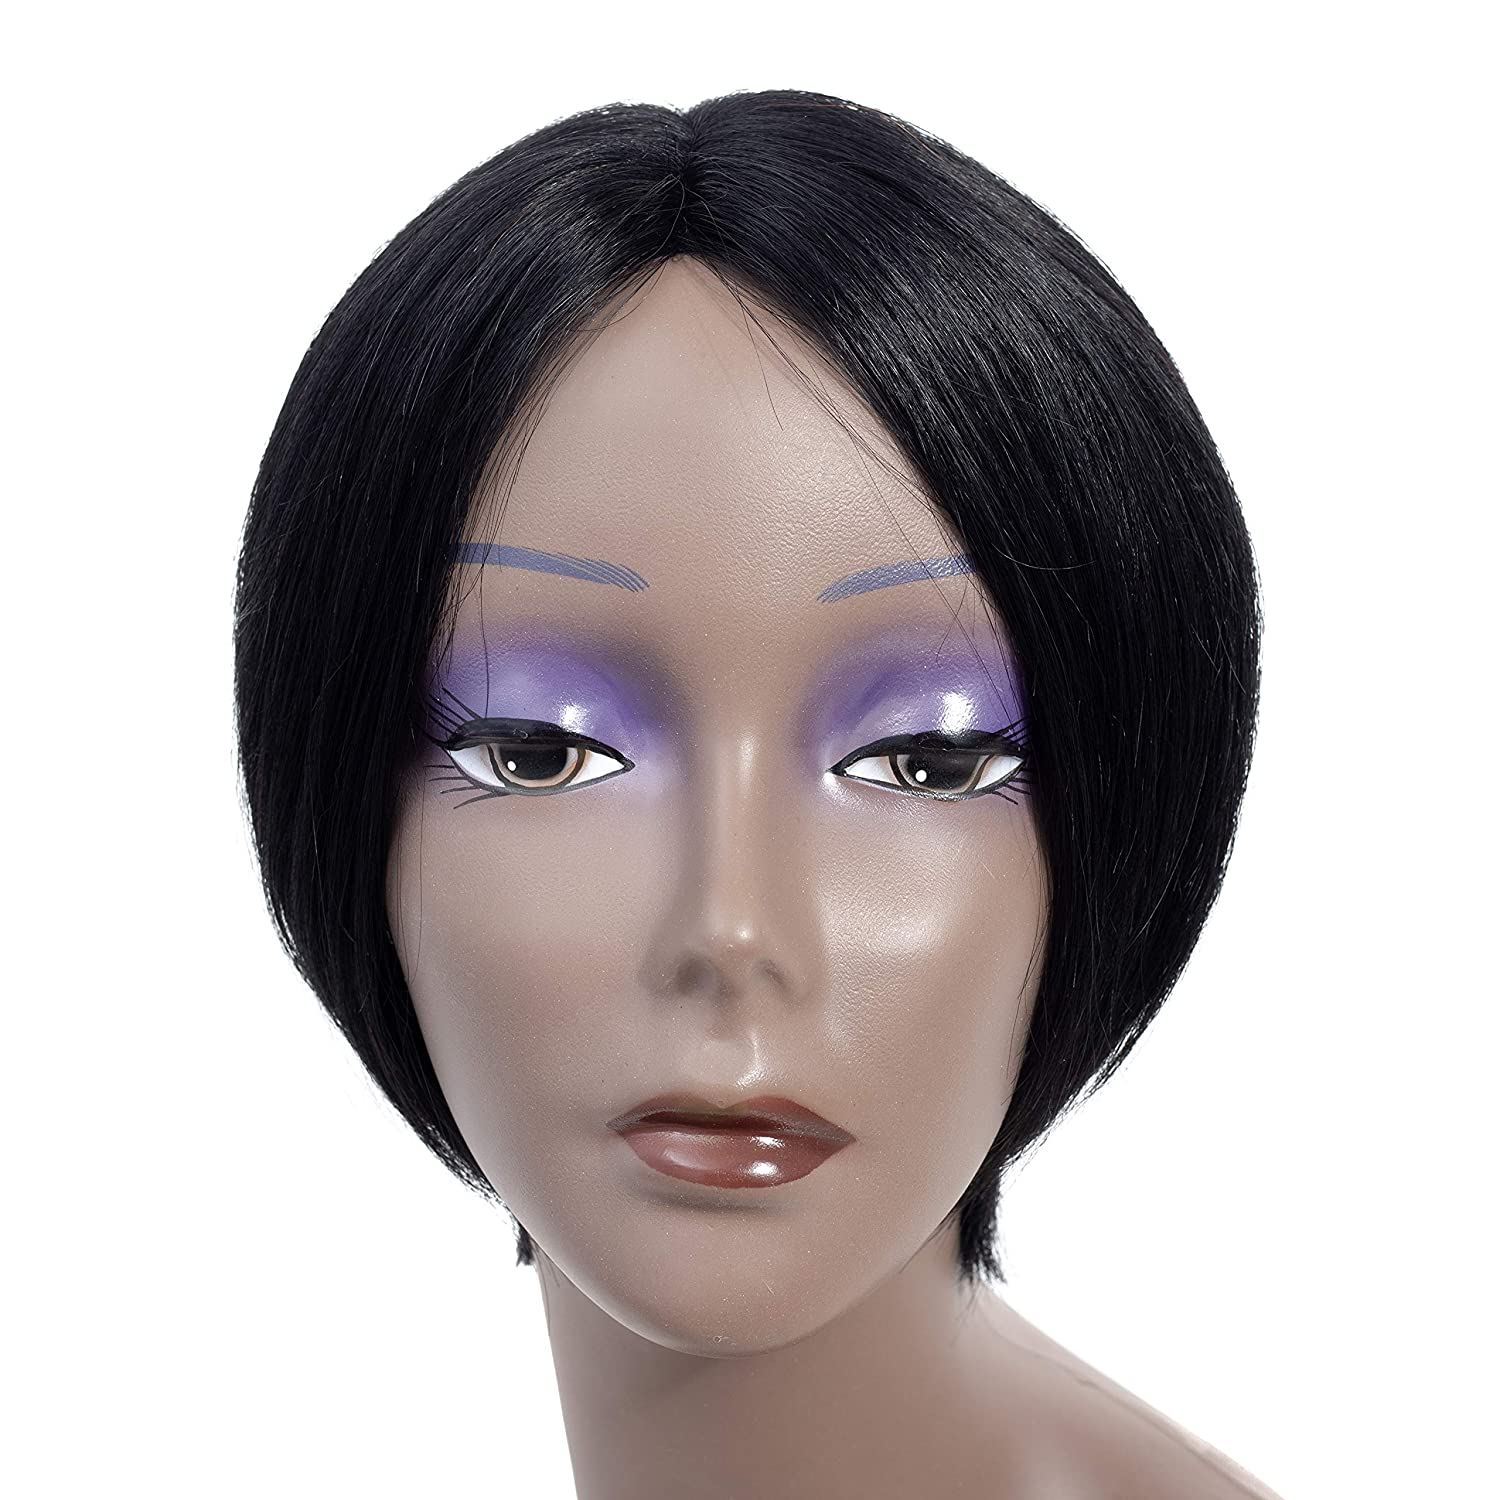 JY hair Tulsa Mall human wigs for Some reservation women the black 9 is